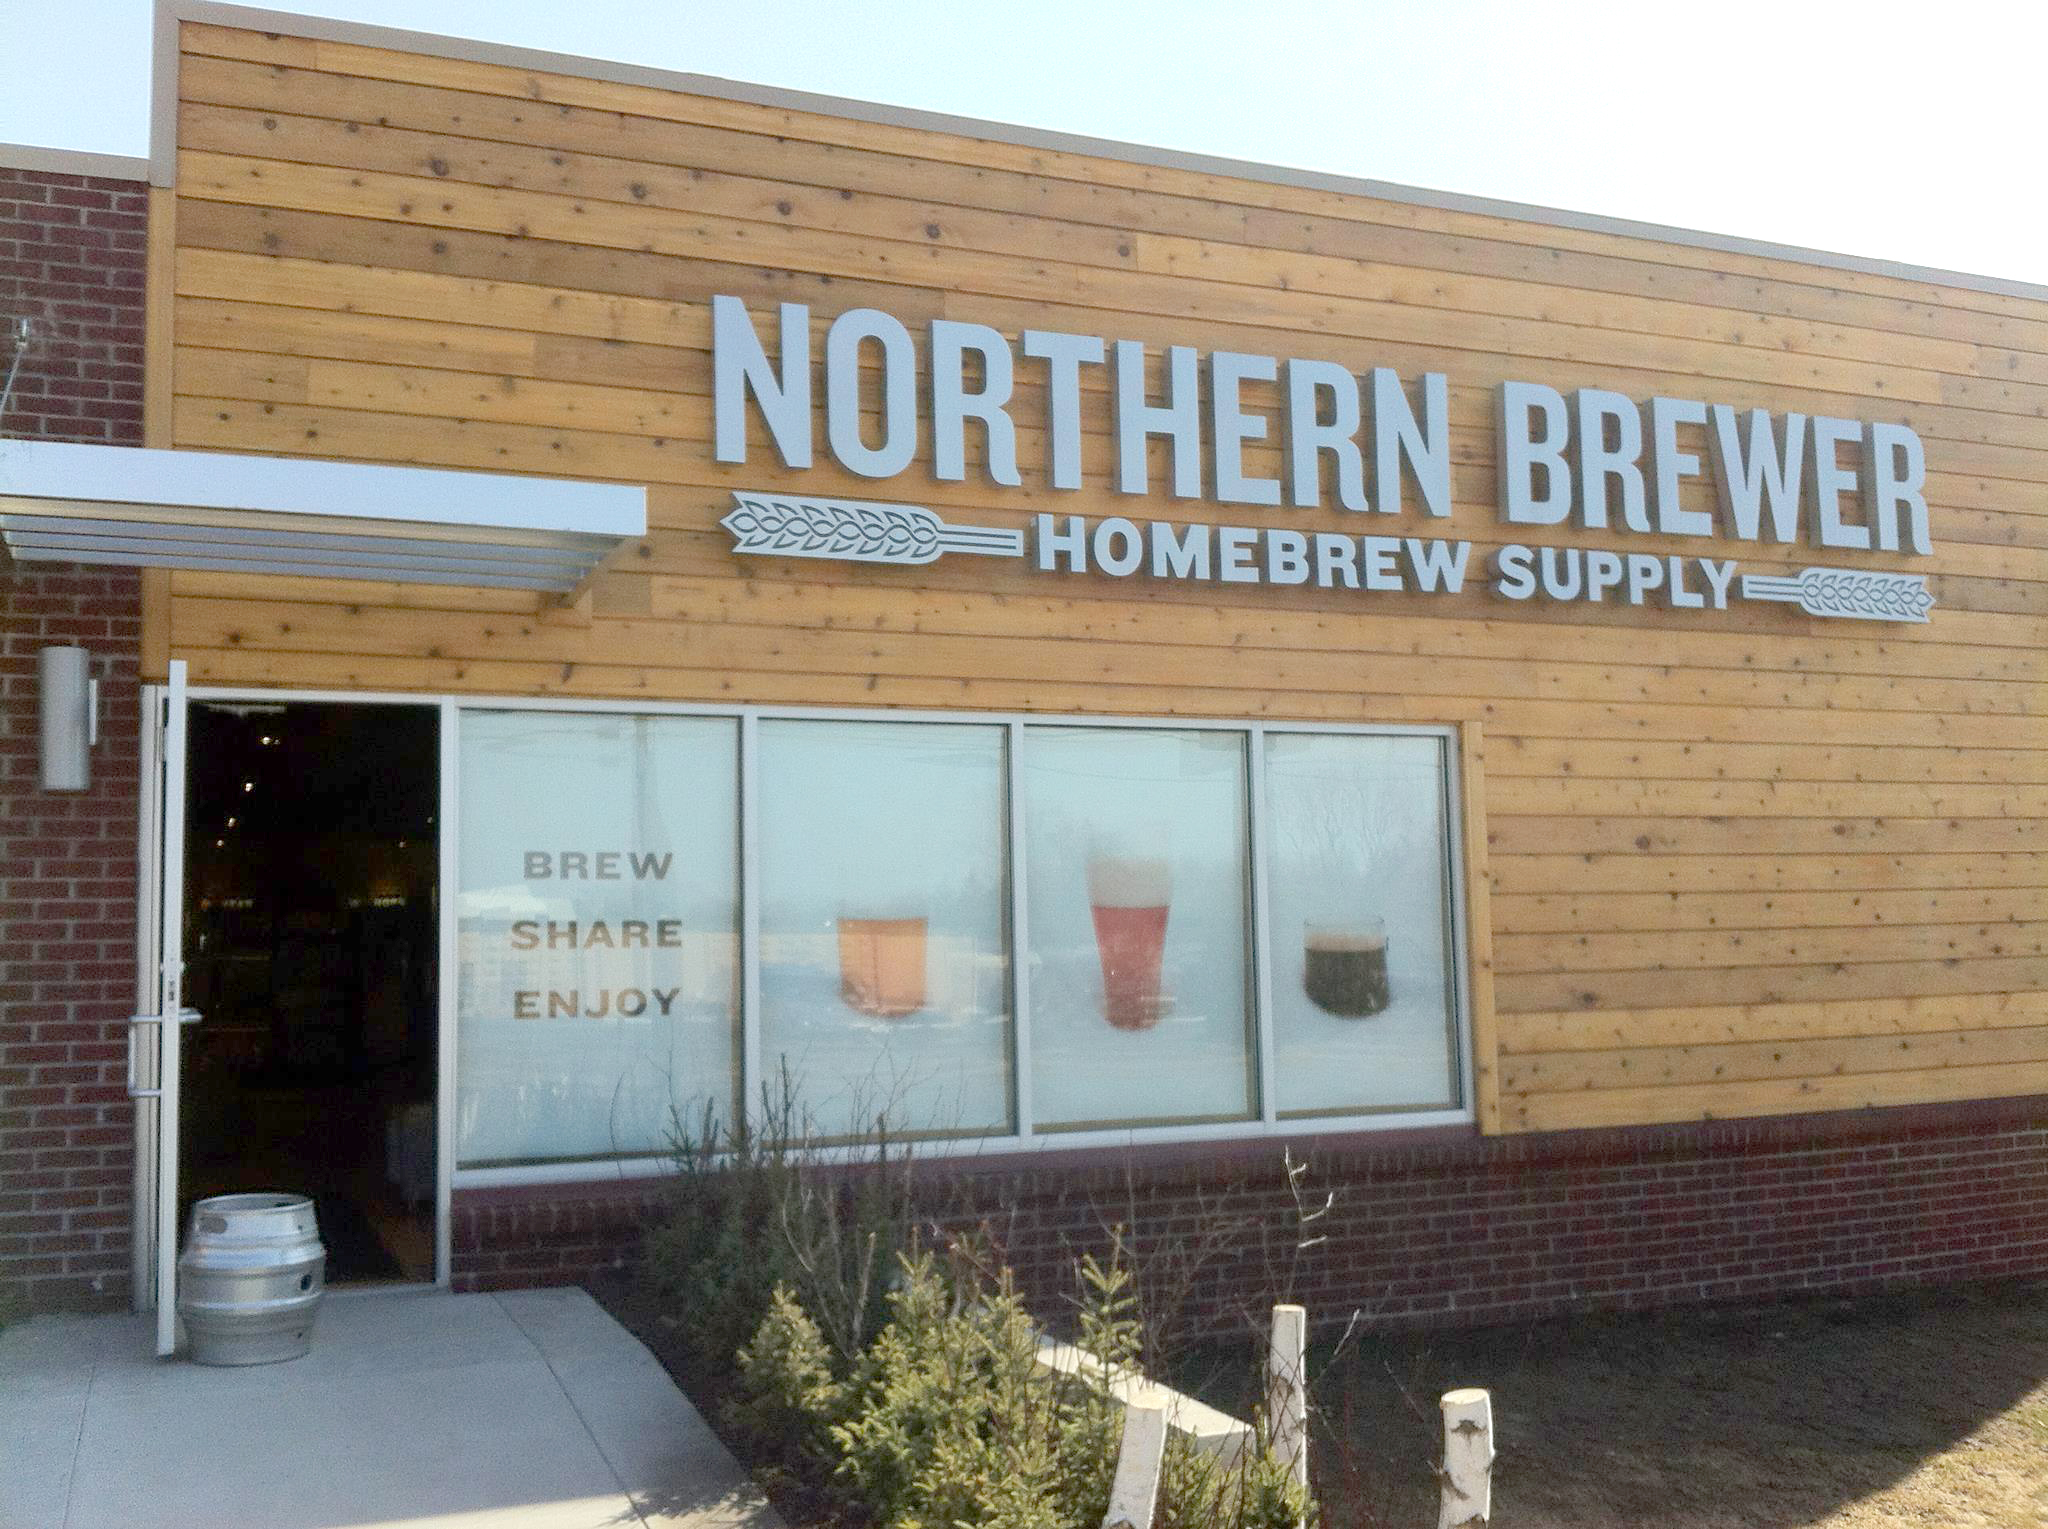 NorthernBrewer